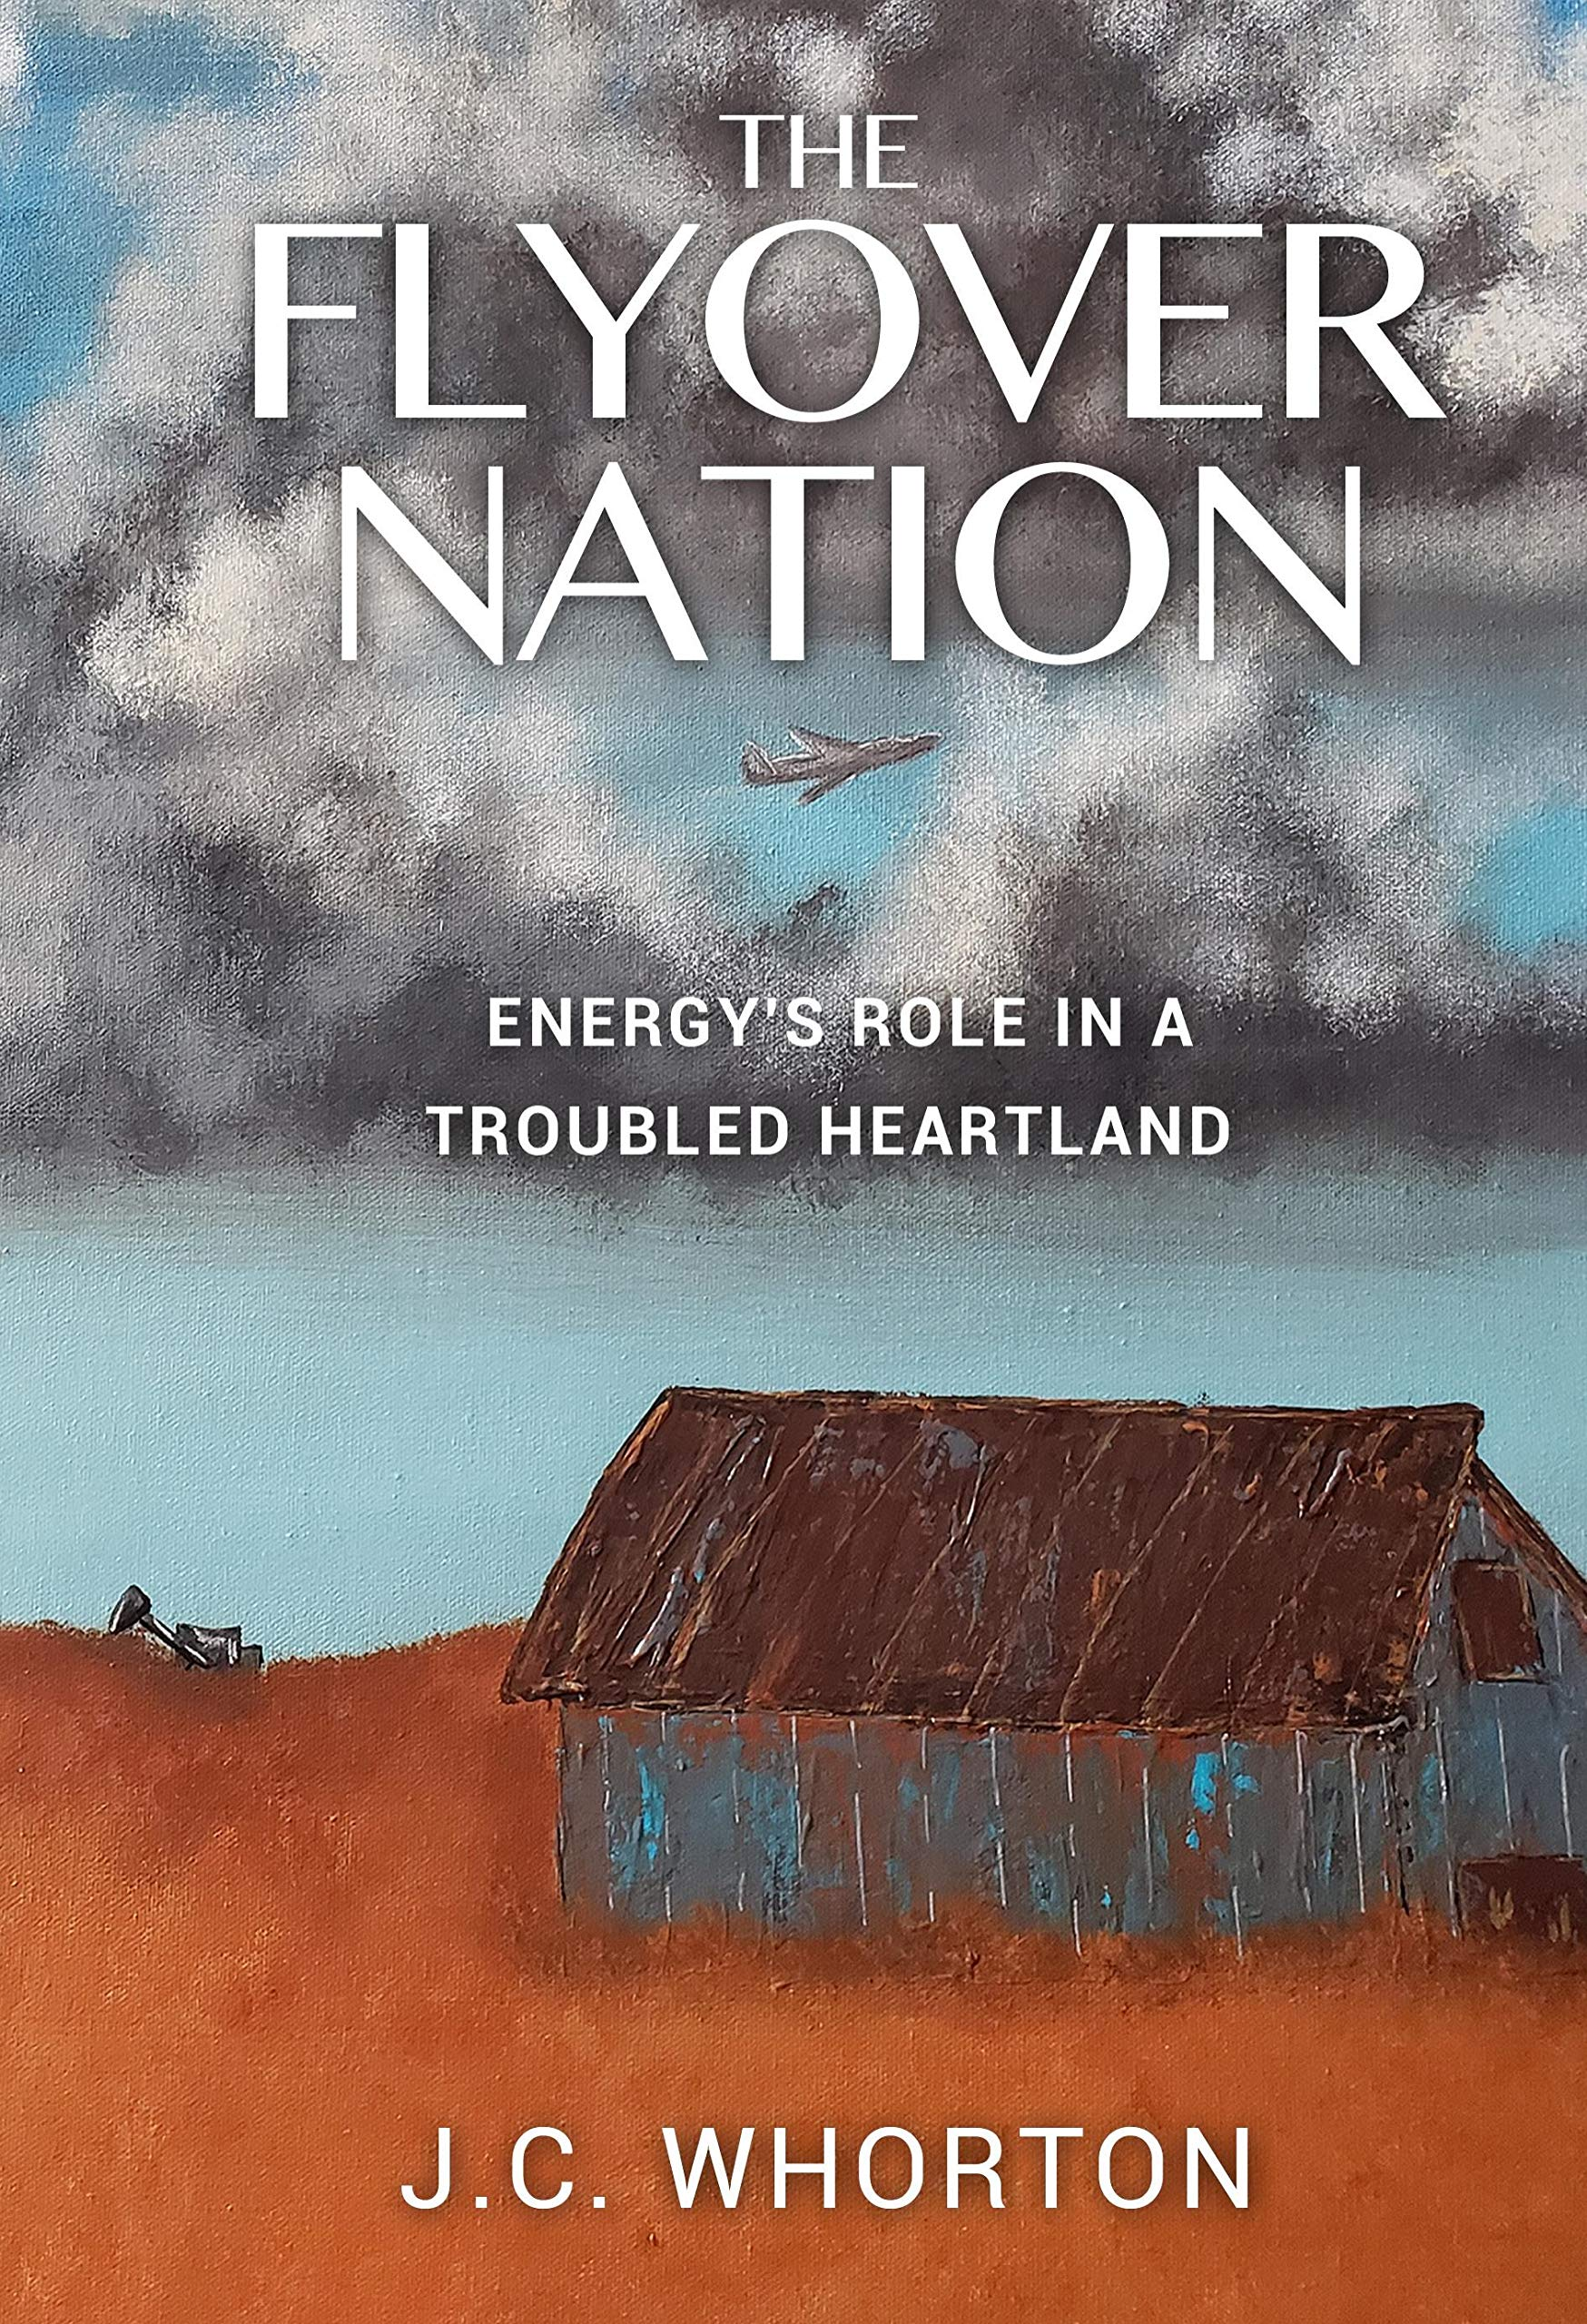 The Flyover Nation: Energy's Role in a Troubled Heartland